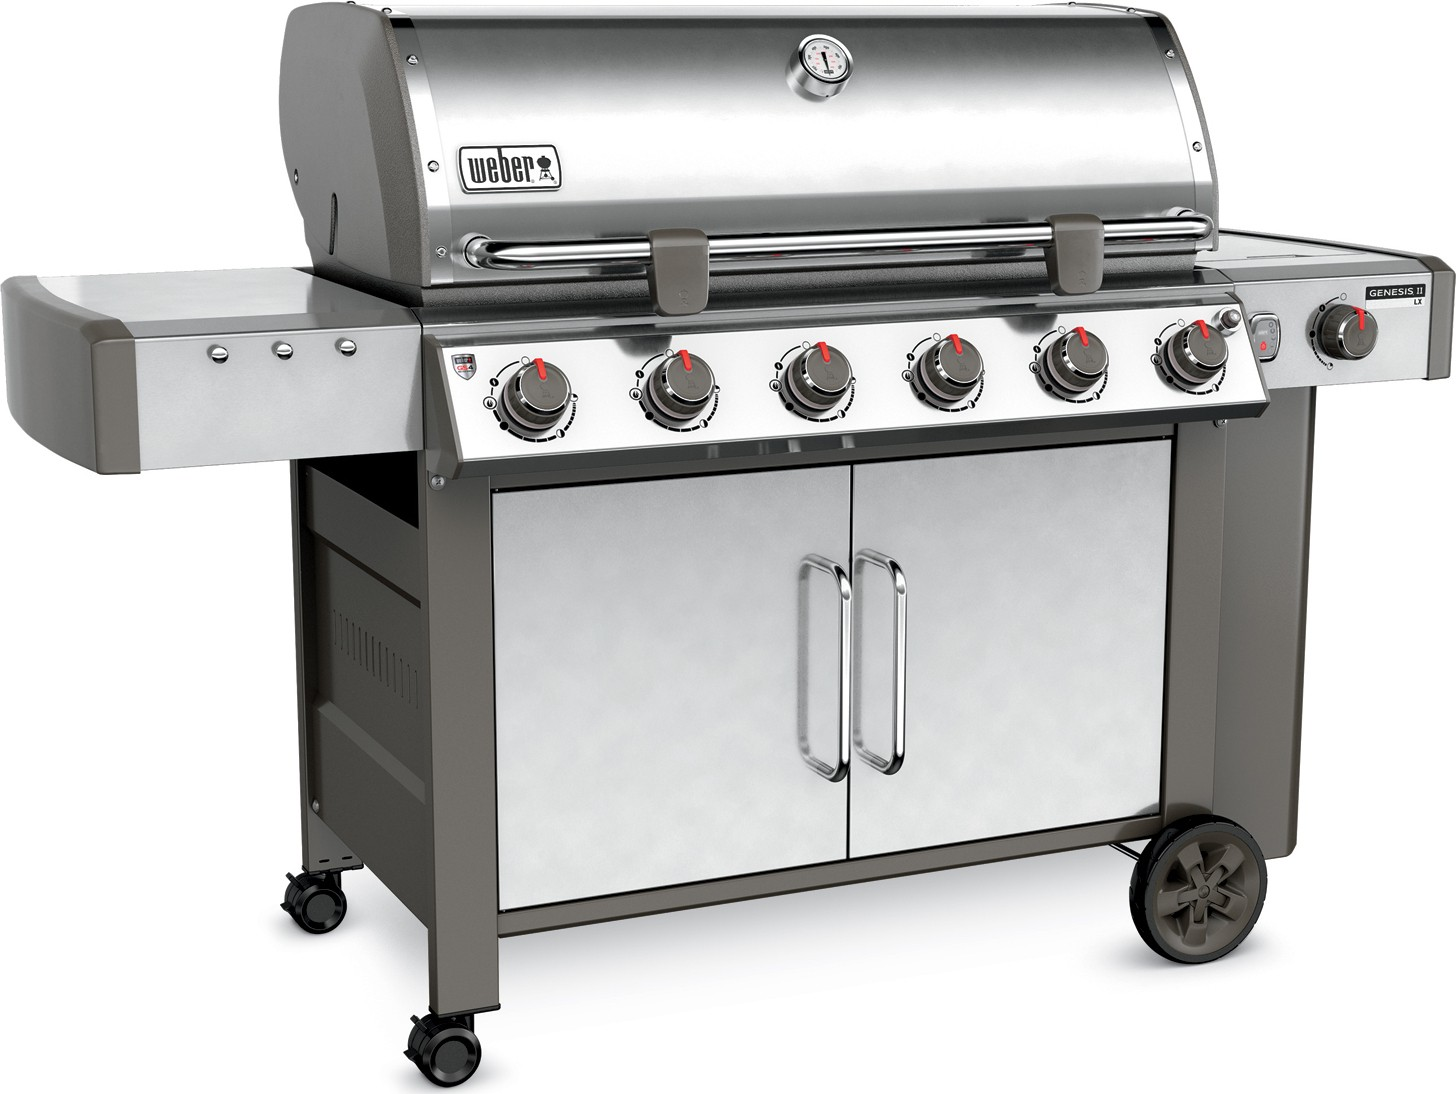 weber genesis ii lx s 640 6 burner gas grill 63004001 stainless steel. Black Bedroom Furniture Sets. Home Design Ideas